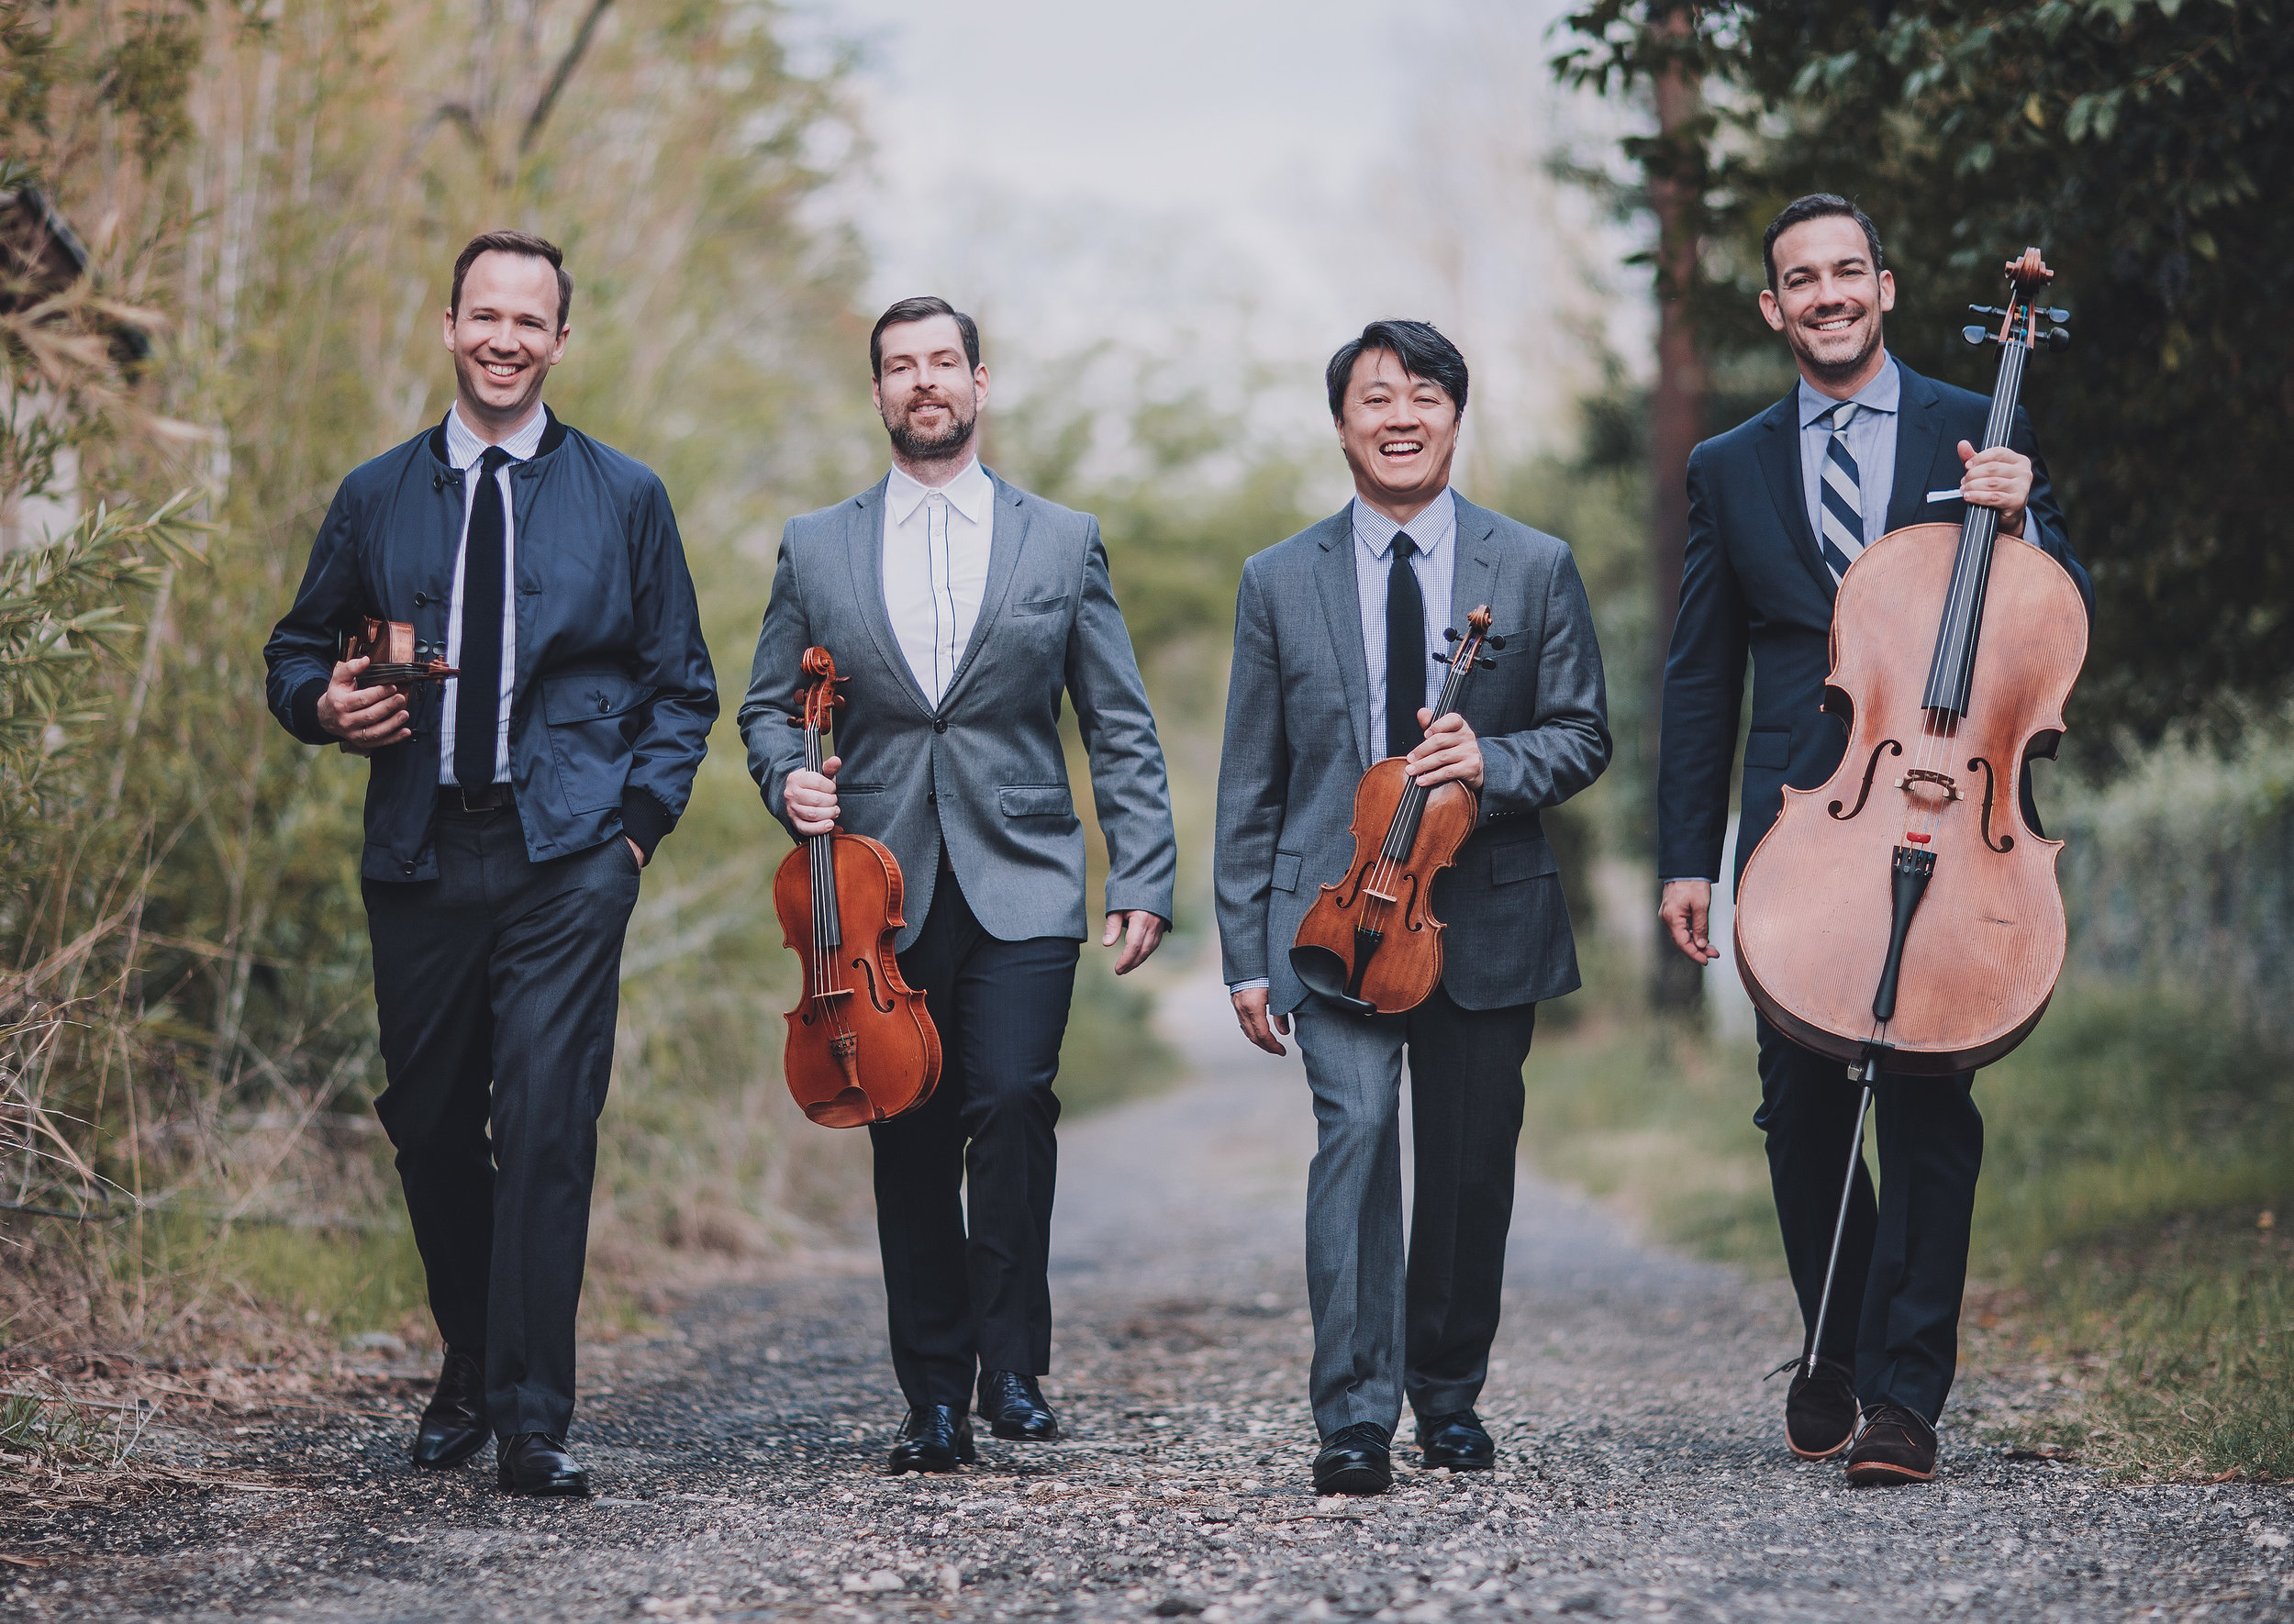 William Fedkenheuer, John Largess, Daniel Ching, Joshua Gindele: the Miró Quartet, who joined A Far Cry at Jordan Hall Friday evening.